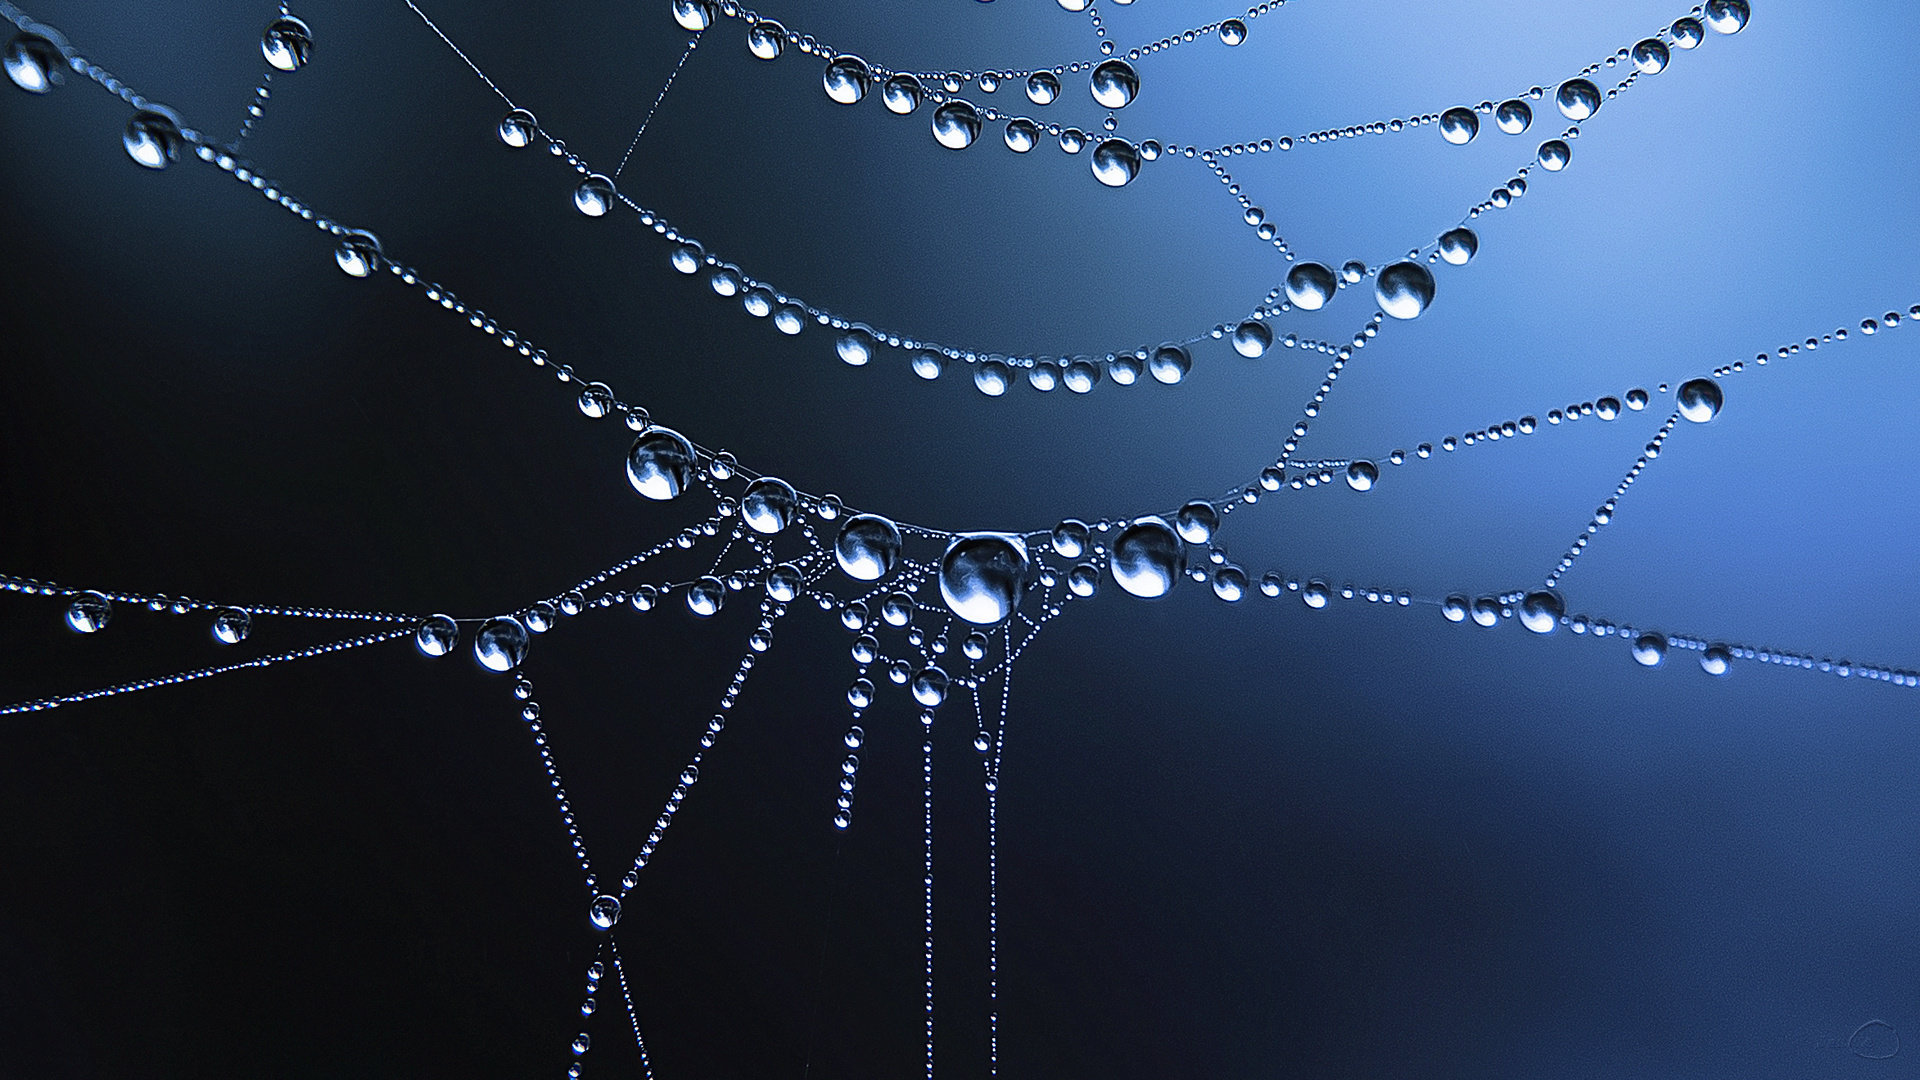 Awesome Spider Web free background ID:184829 for hd 1920x1080 desktop